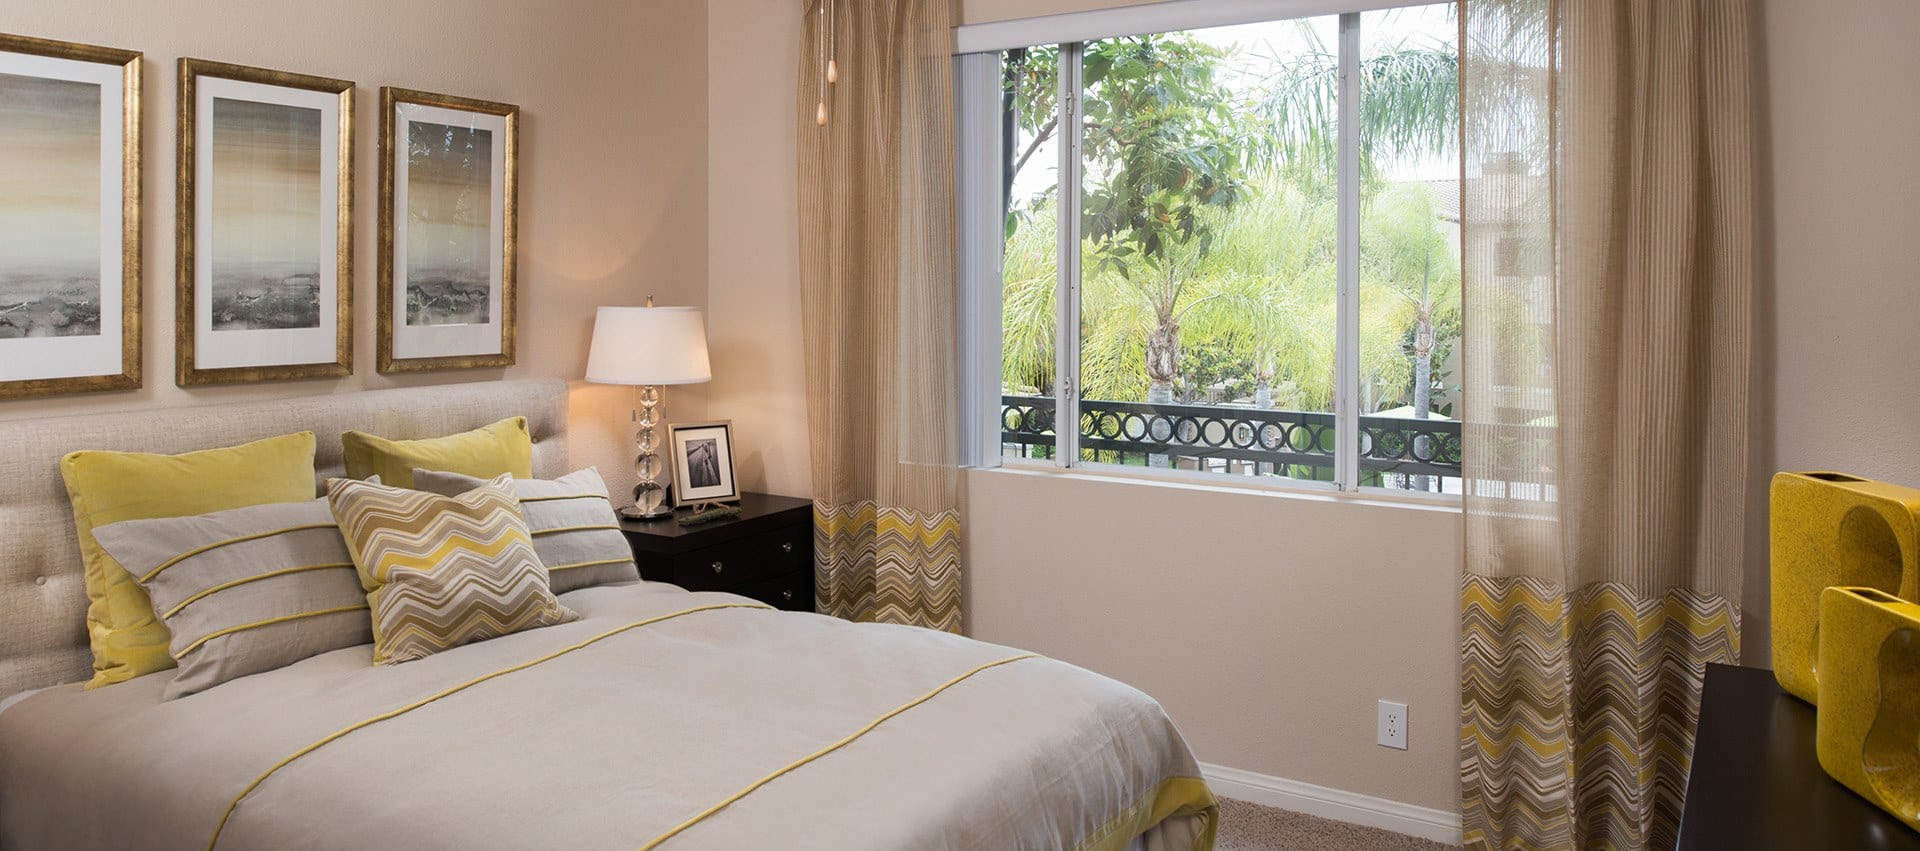 Comfy Bedroom in Alize at Aliso Viejo Apartment Homes in Aliso Viejo, California